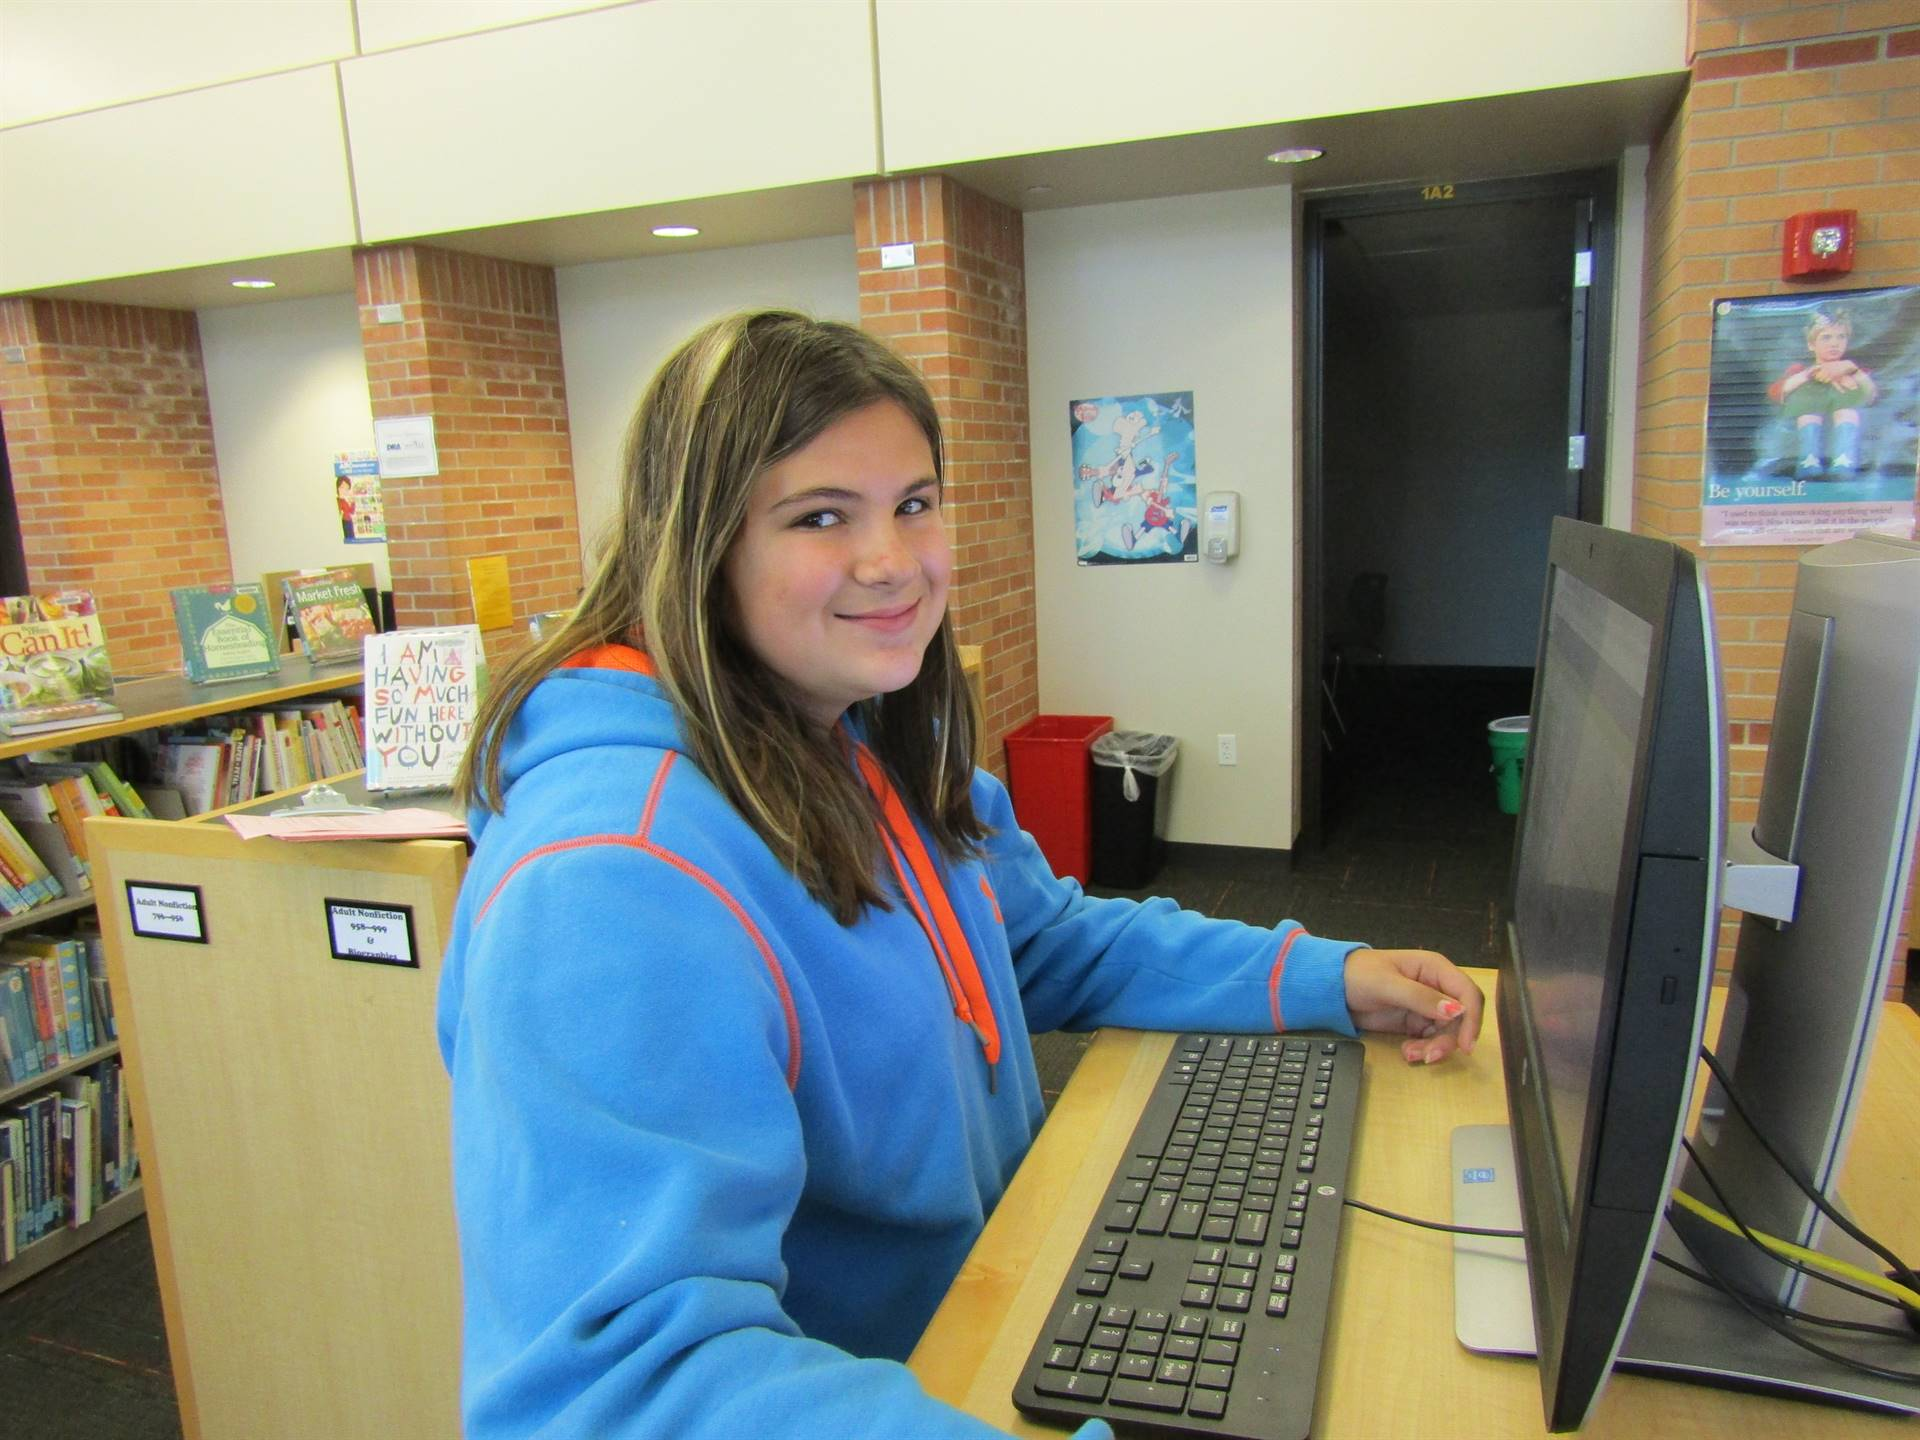 8th grade student uses the library computer to check out a book